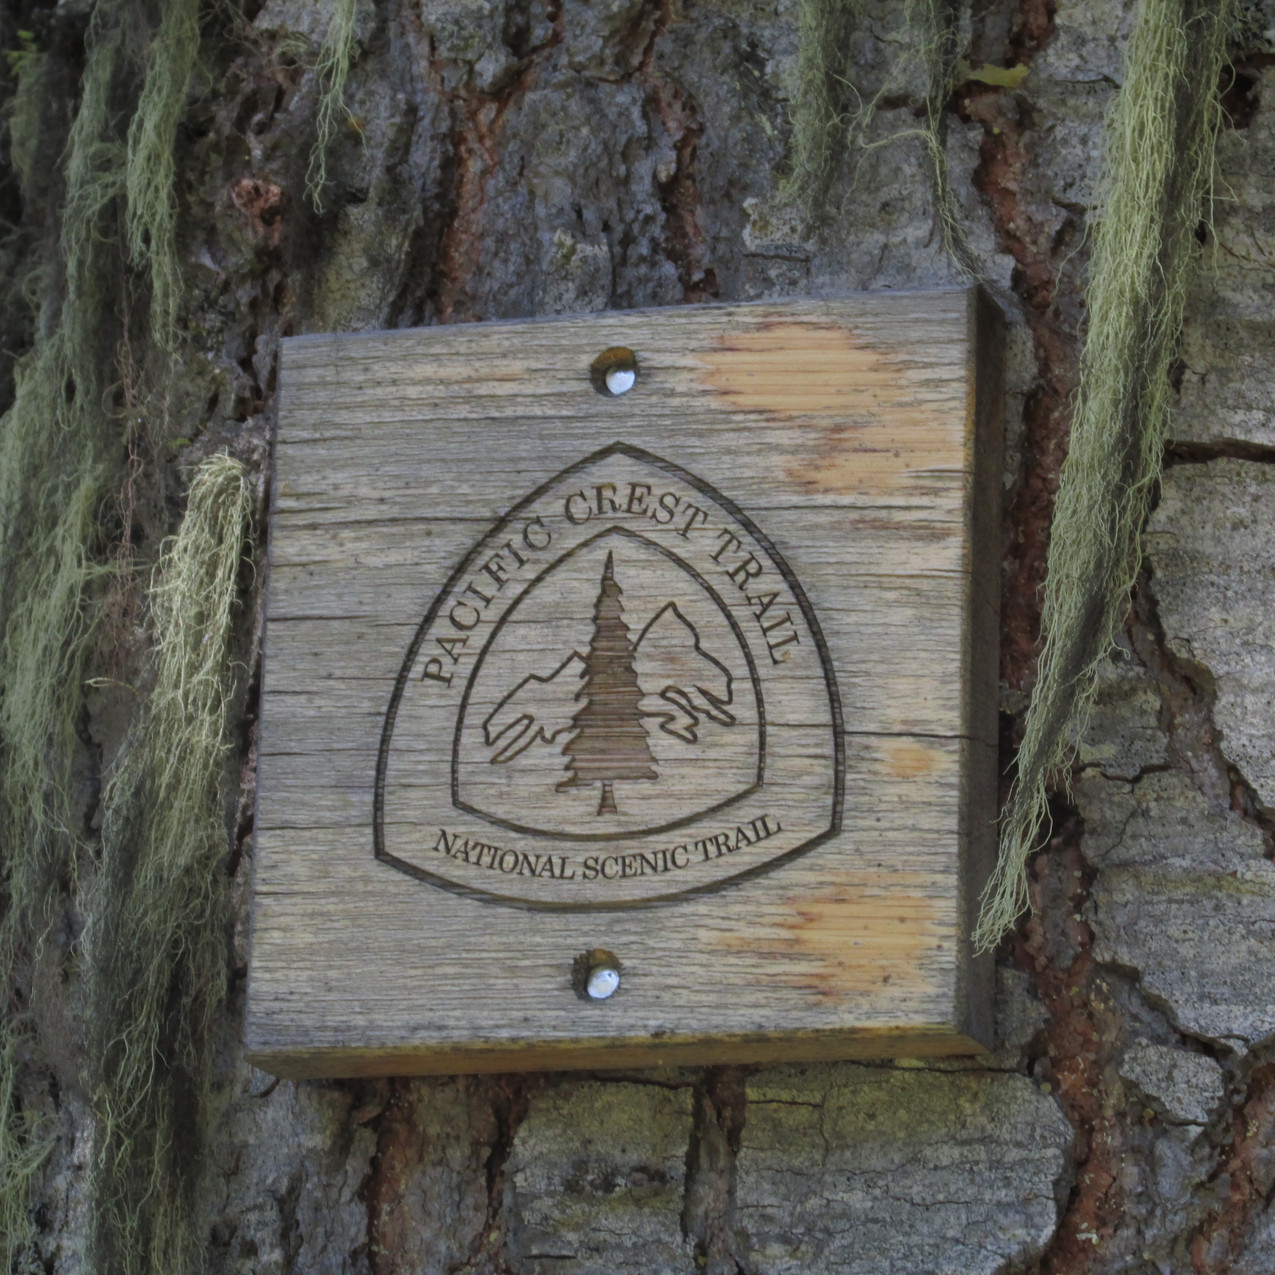 Another way the PCT was marked.